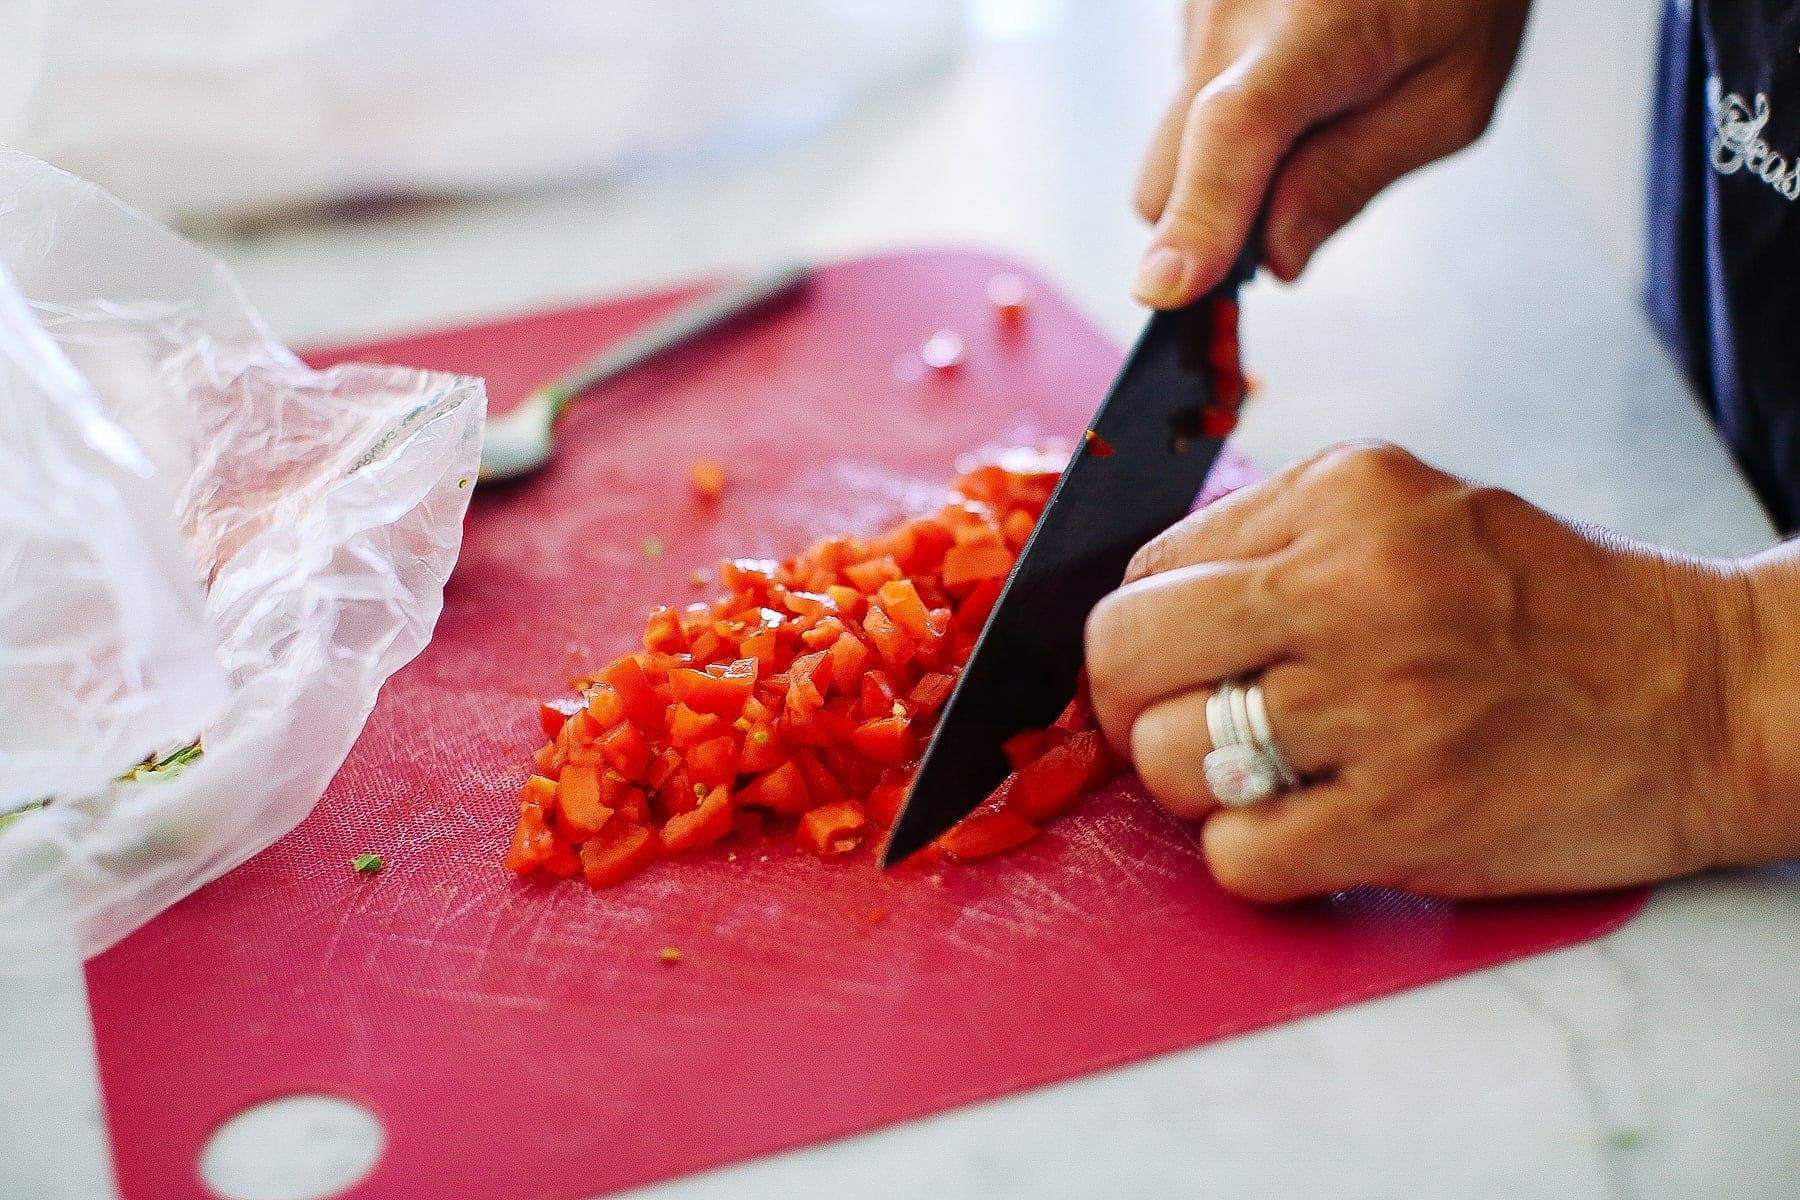 diced tomatos